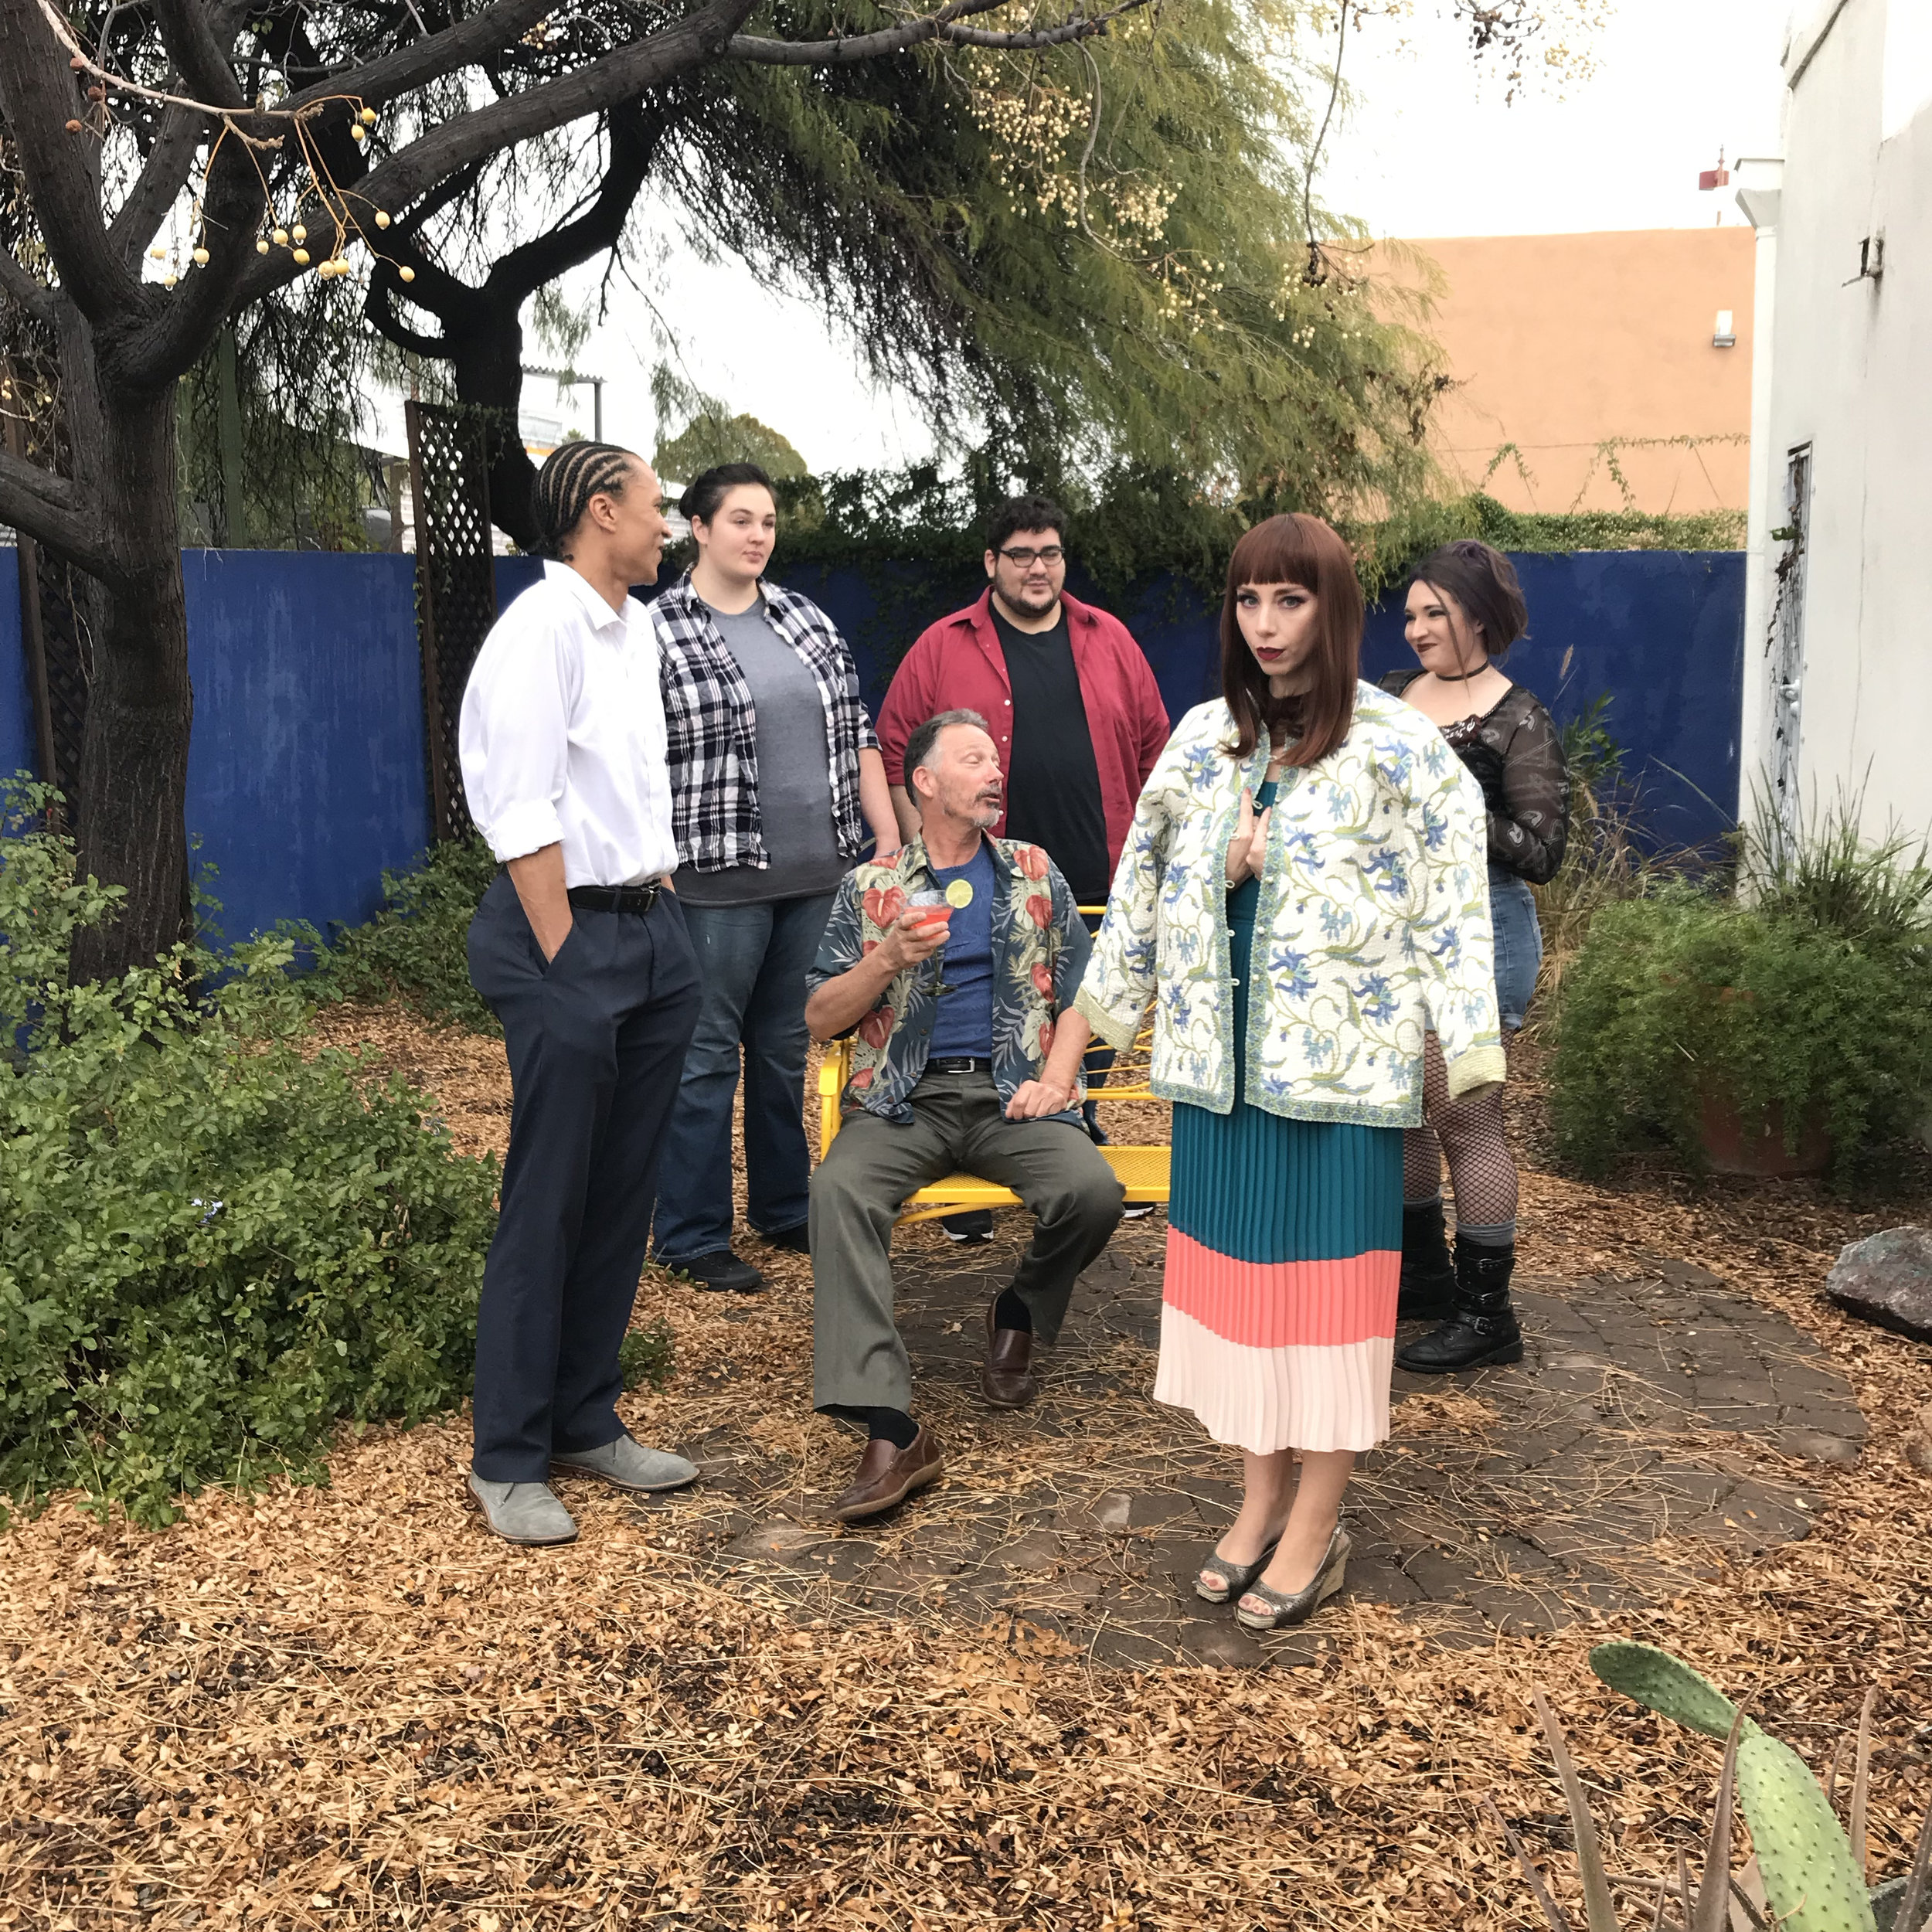 setting up a group of actors in the garden for a promo photo image for winding road theater ensemble's production of stupid f*cking bird -